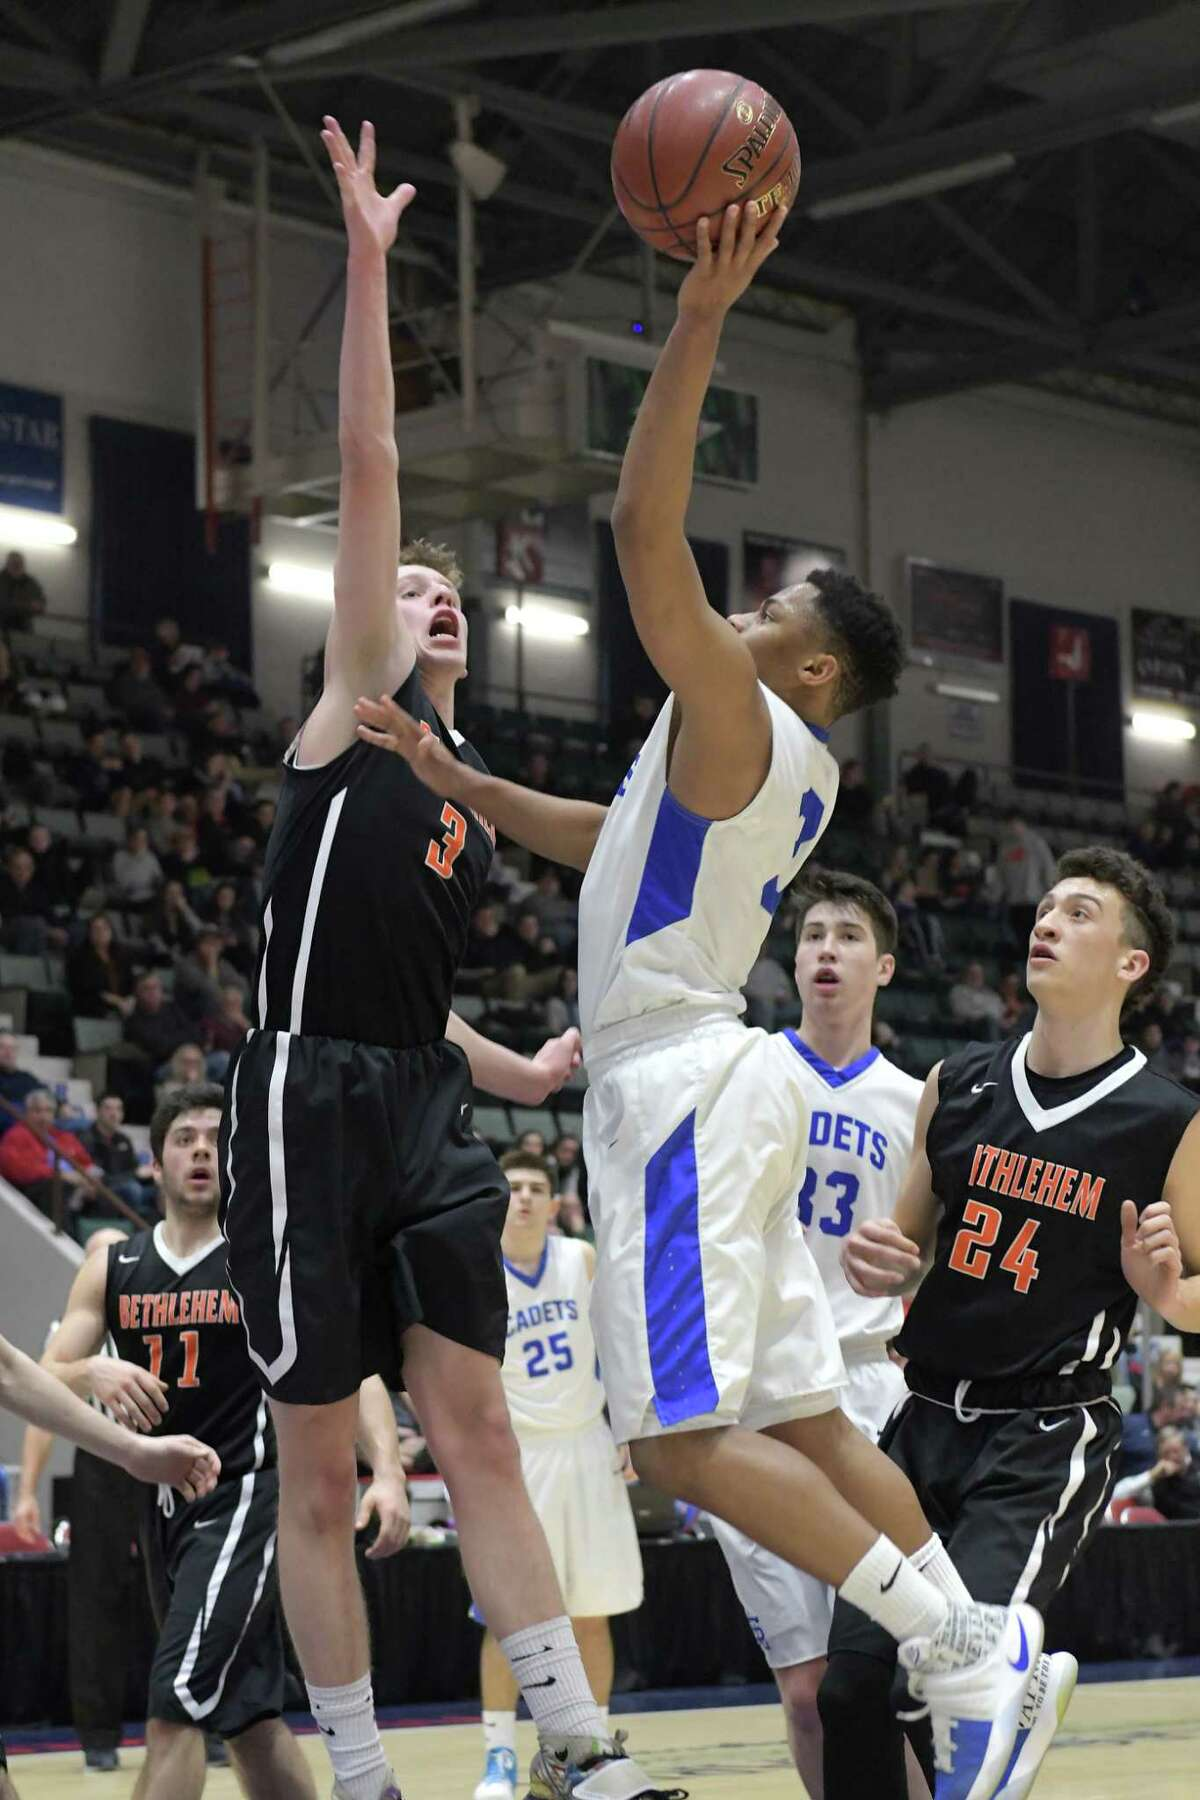 Hayden Thompson of Bethlehem, left, tries to block the shot of Raymond Evans of La Salle Institute, during their Class AA semifinal game at the Glens Falls Civic Center on Tuesday, Feb. 28, 2017, in Glens Falls, N.Y. (Paul Buckowski / Times Union)